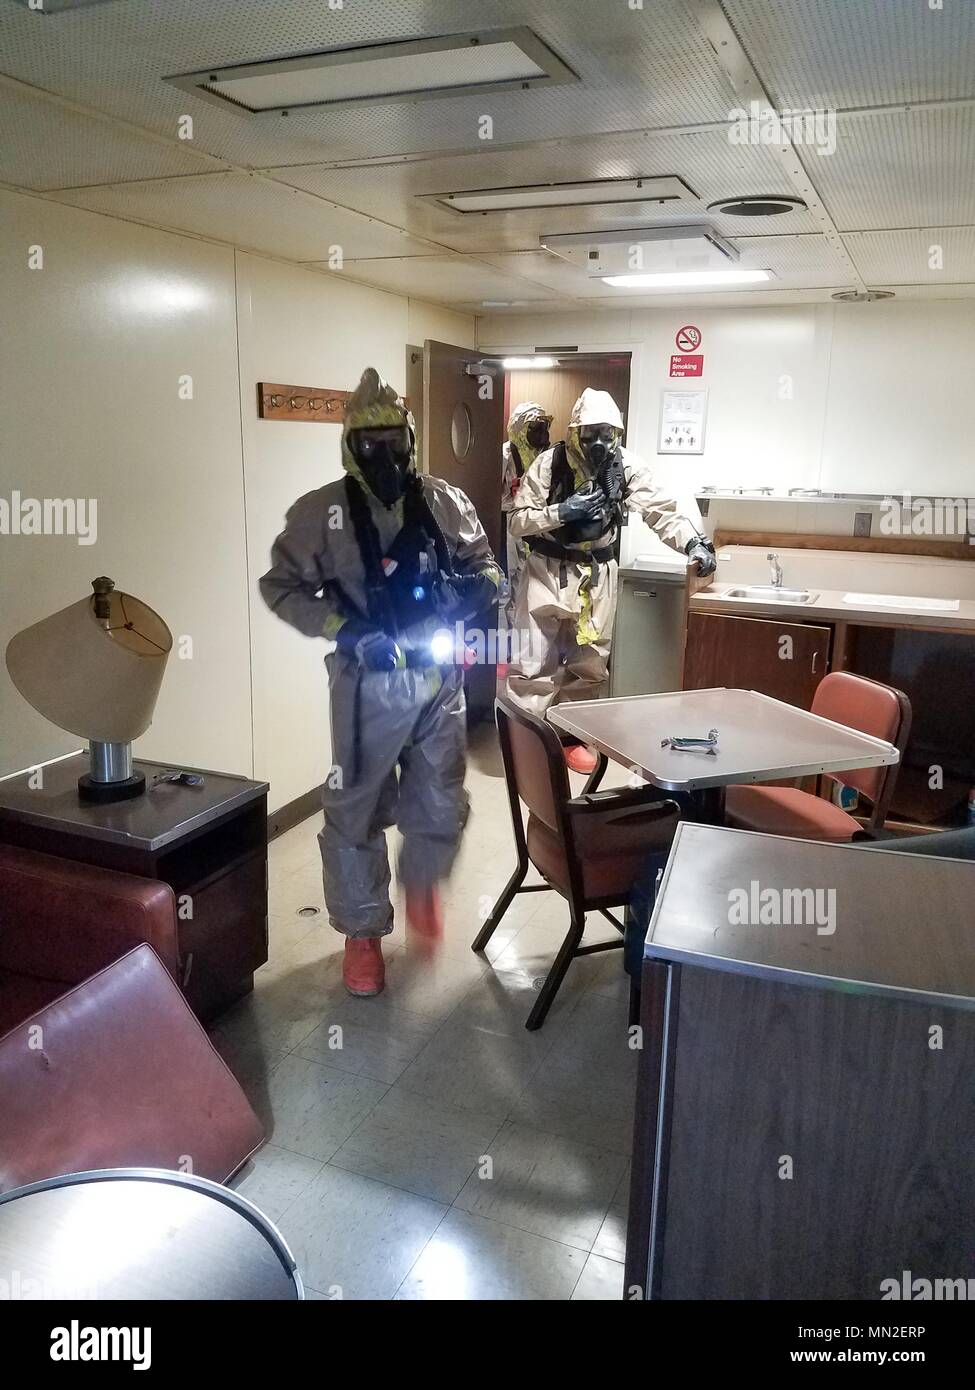 National Guard service members from Pennsylvania, New Jersey, and Delaware respond to a simulated radiological threat at the Port of Baltimore on May 9, 2018, during exercise Vigilant Guard 18, May 9, 2018. Vigilant Guard is an exercise that allows the Maryland Military Department, along with 42 federal, state, and local agencies a chance to collaborate and test interoperability as part of a national level exercise. The agencies are evaluated on preparing for and recovering from a catastrophic hurricane making landfall. Nearly 2, 000 service members, from with in the FEMA Region III area, are  - Stock Image